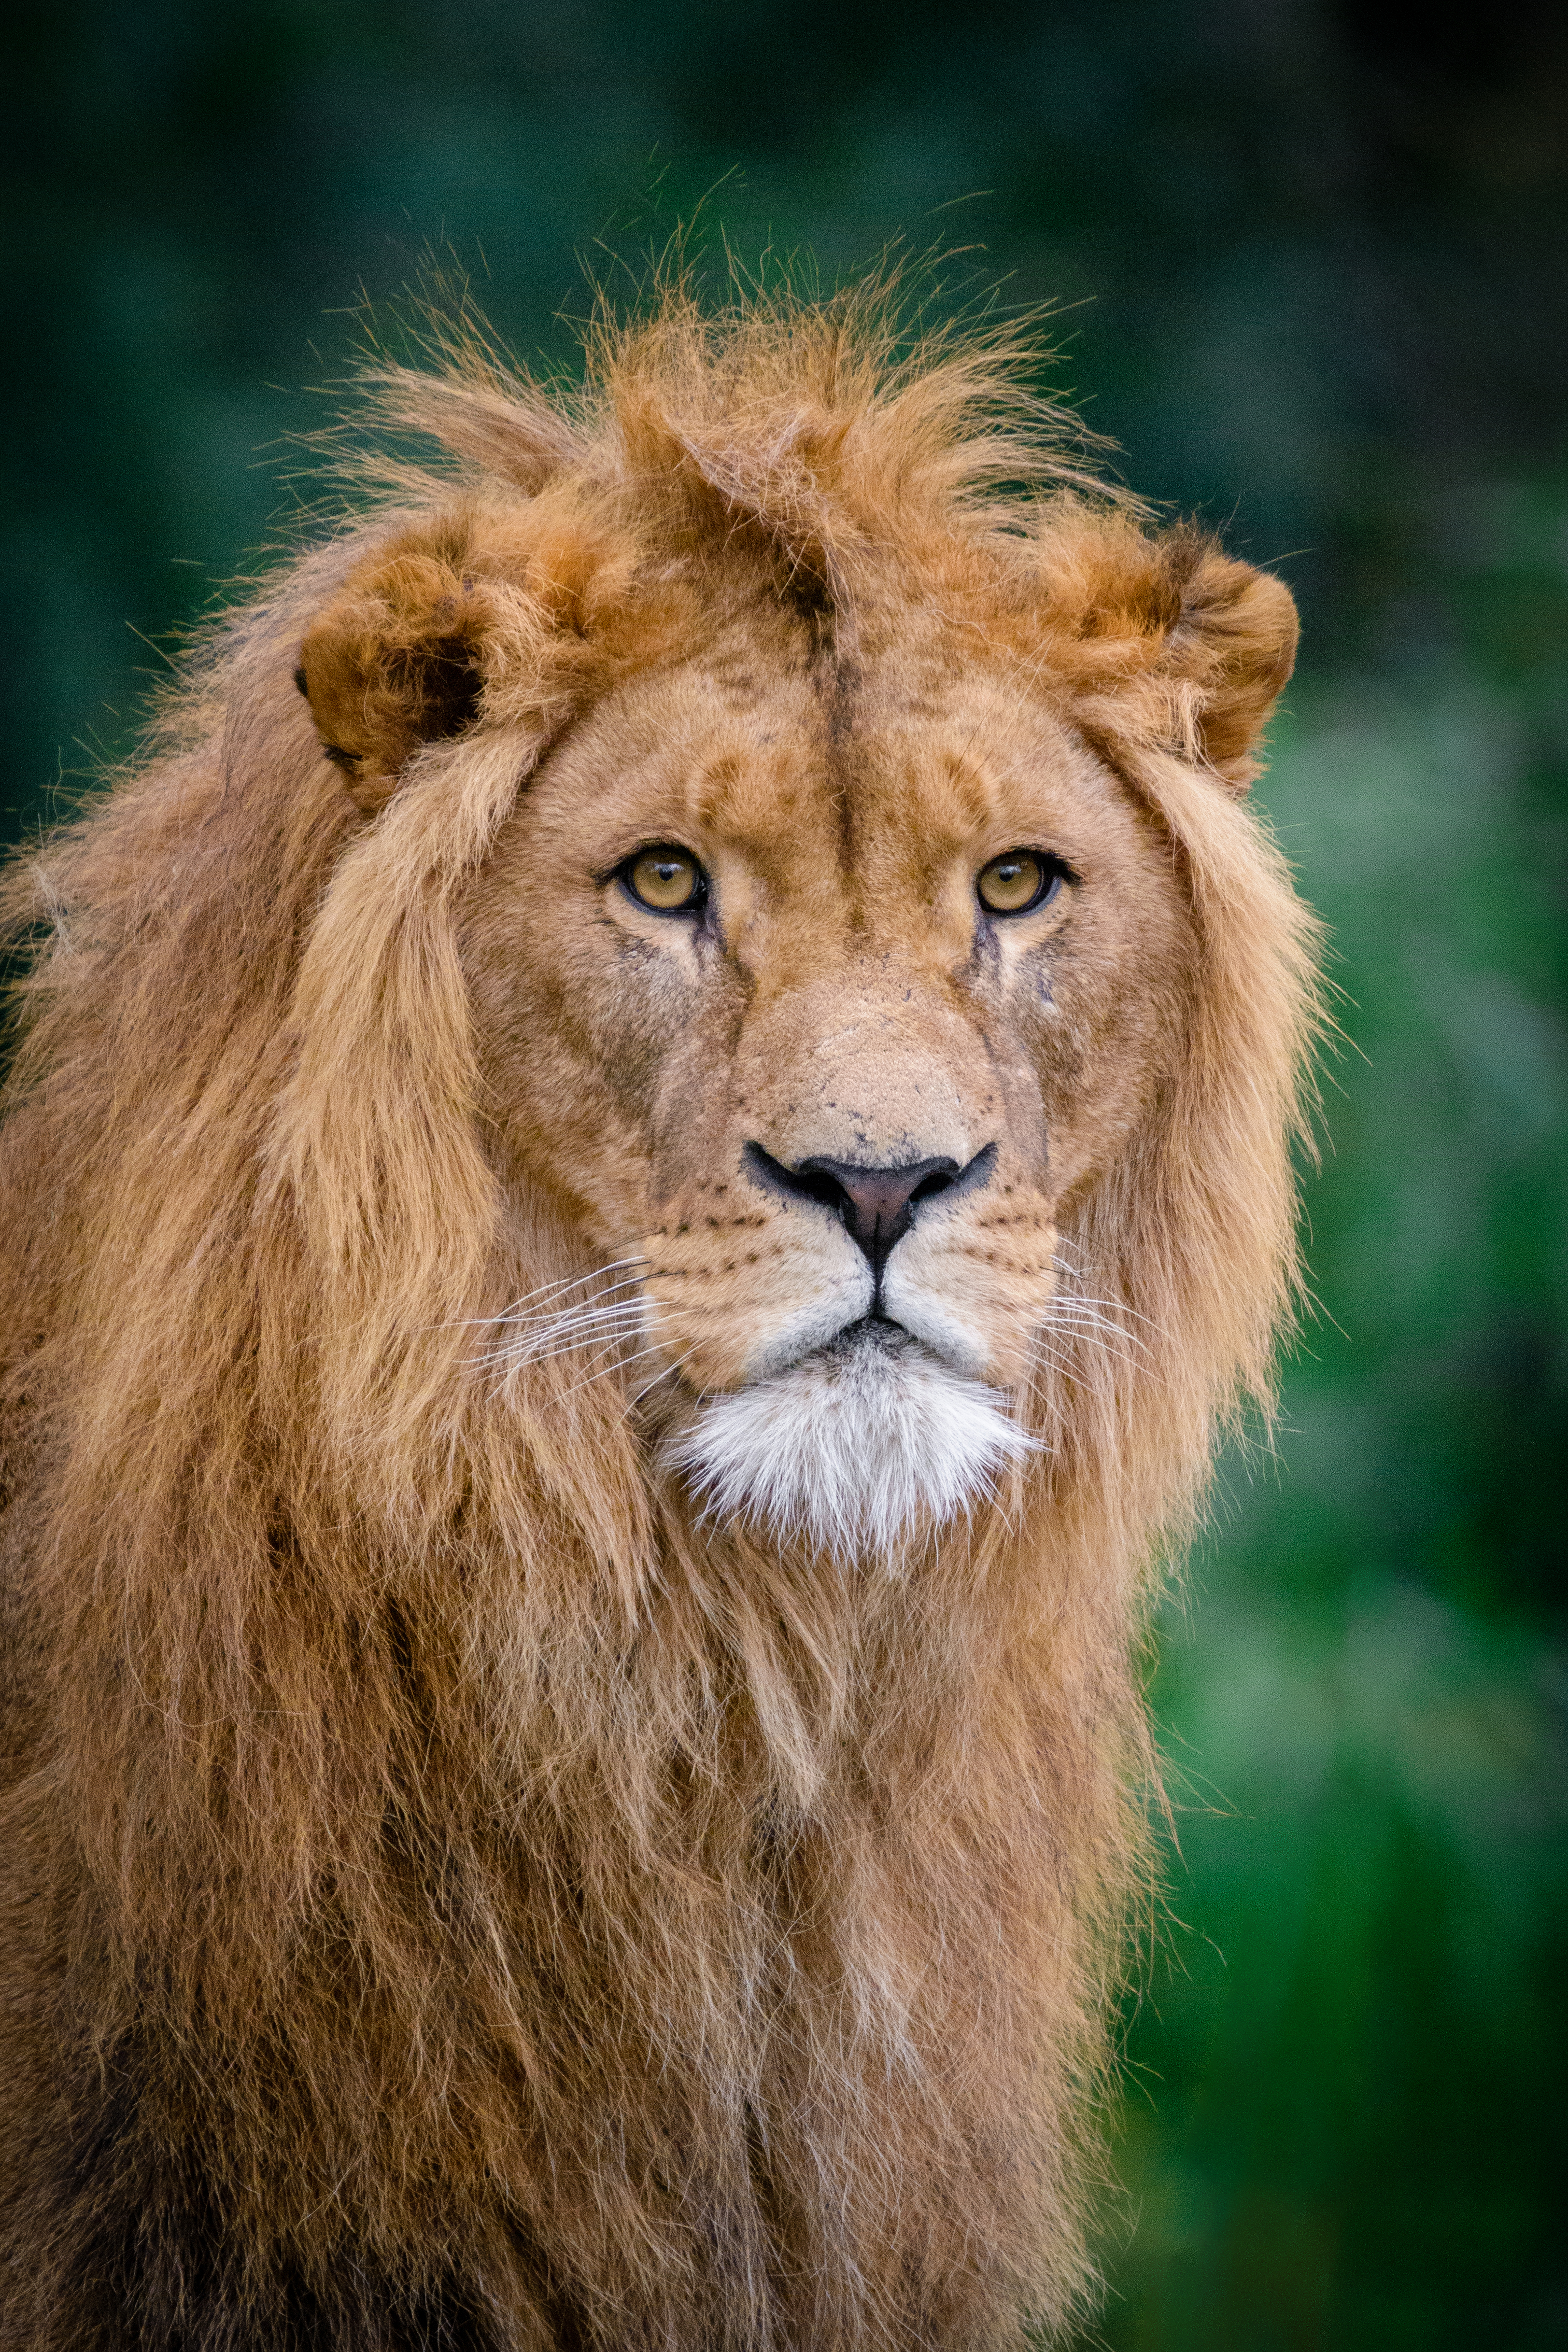 92471 download wallpaper Animals, Lion, King Of Beasts, King Of The Beasts, Muzzle screensavers and pictures for free